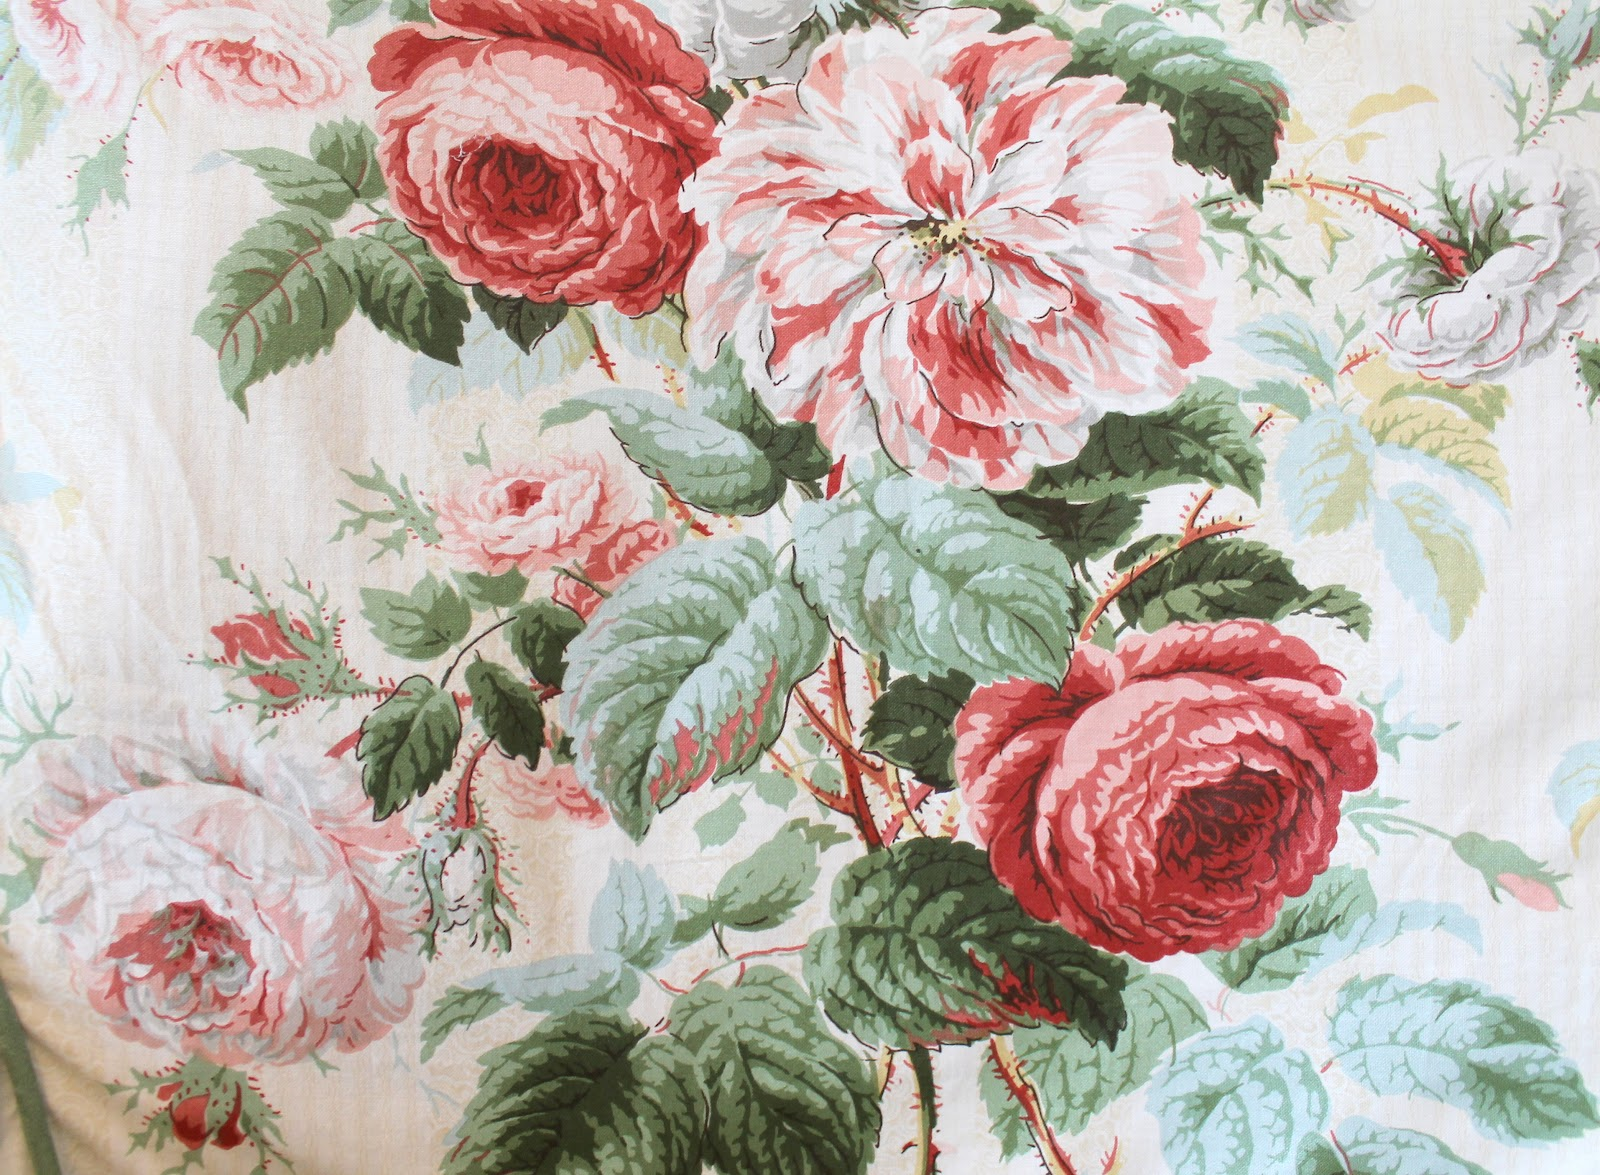 betsy speert 39 s blog cabbage roses and stuff. Black Bedroom Furniture Sets. Home Design Ideas